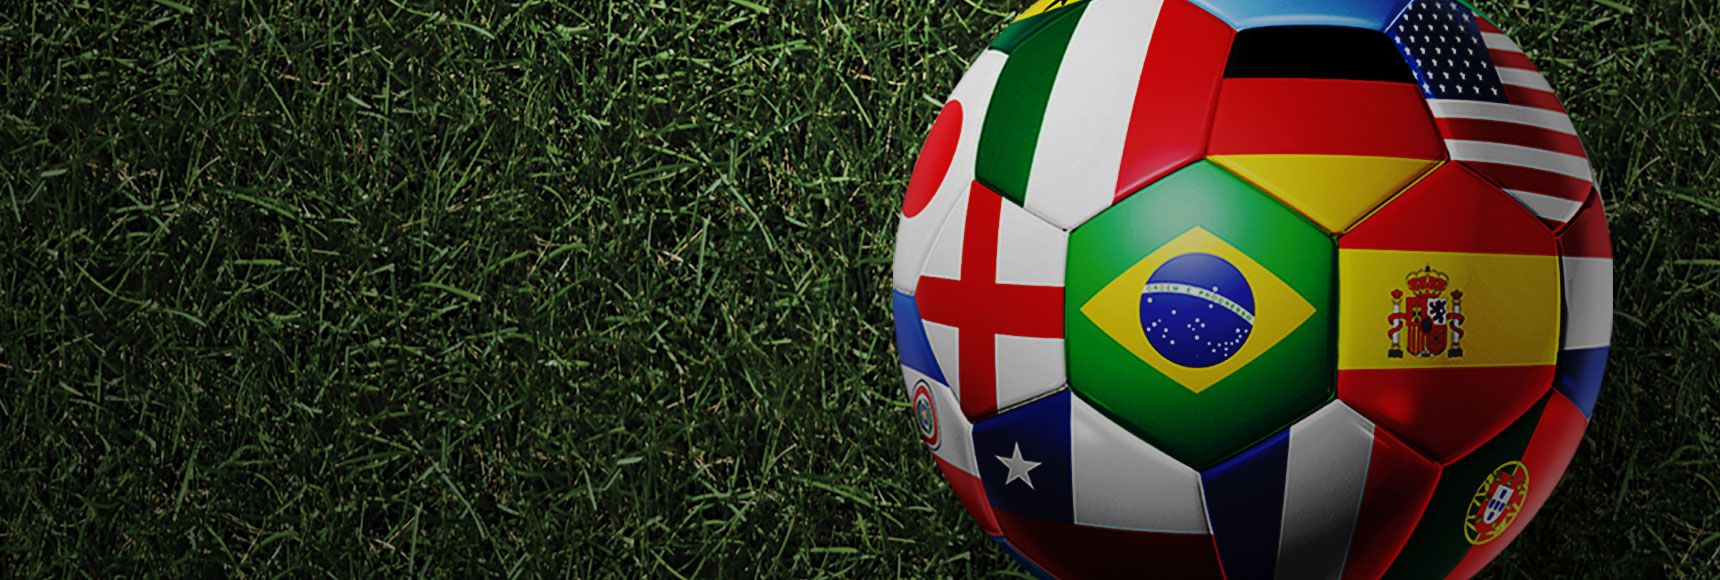 soccer ball with different nations as tiles